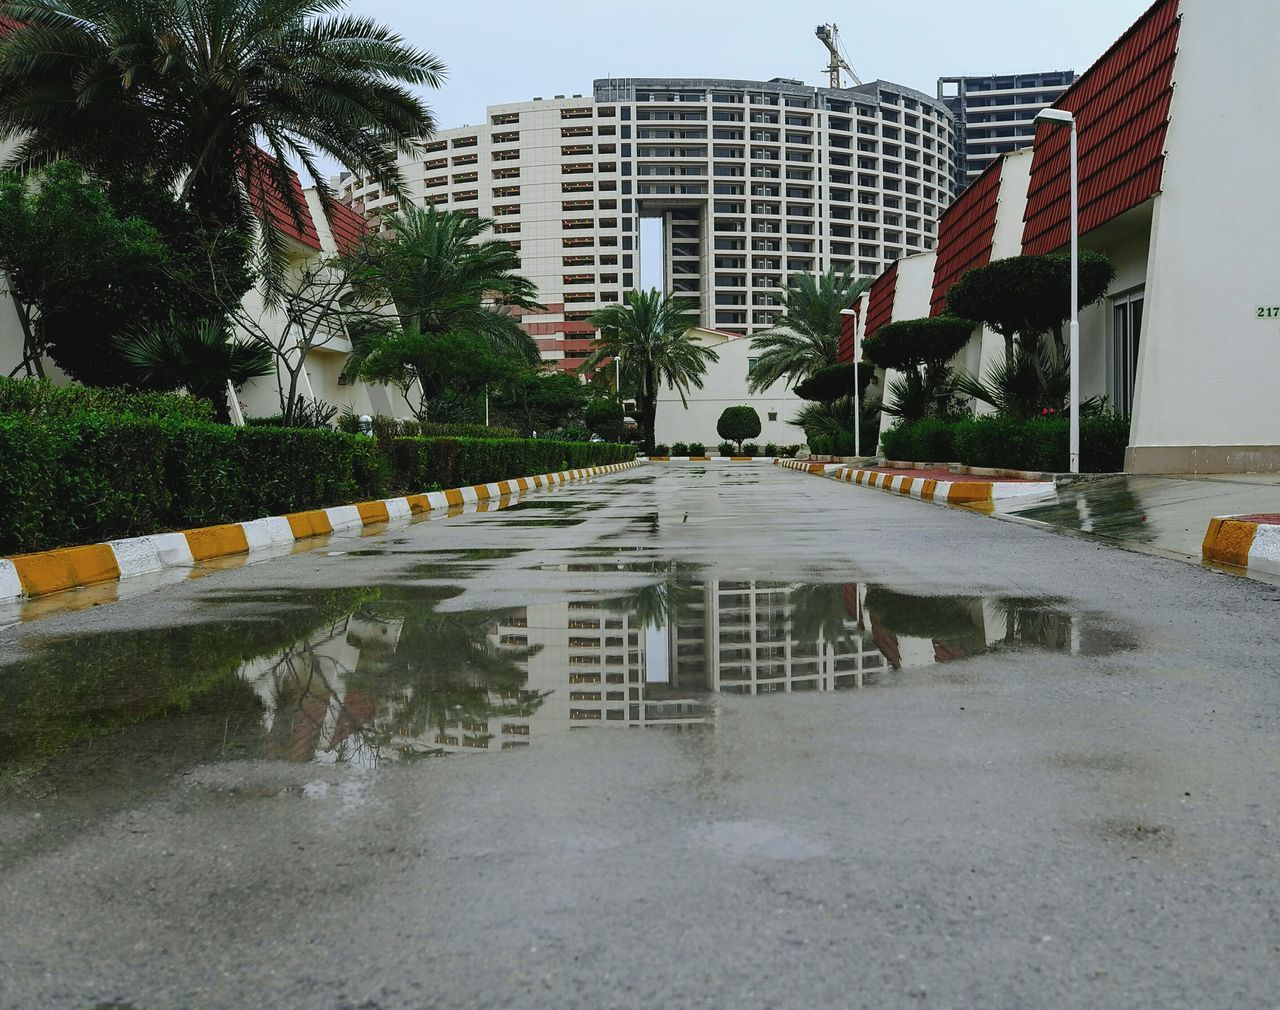 rainy days Minimalist Architecture The City Light Reflections In The Water Natural Light Urban Landscape Urban Perspectives Urban Lifestyle Kish Island After The Rain Rainy Days Rainy Day Rainy Weather Built Structures